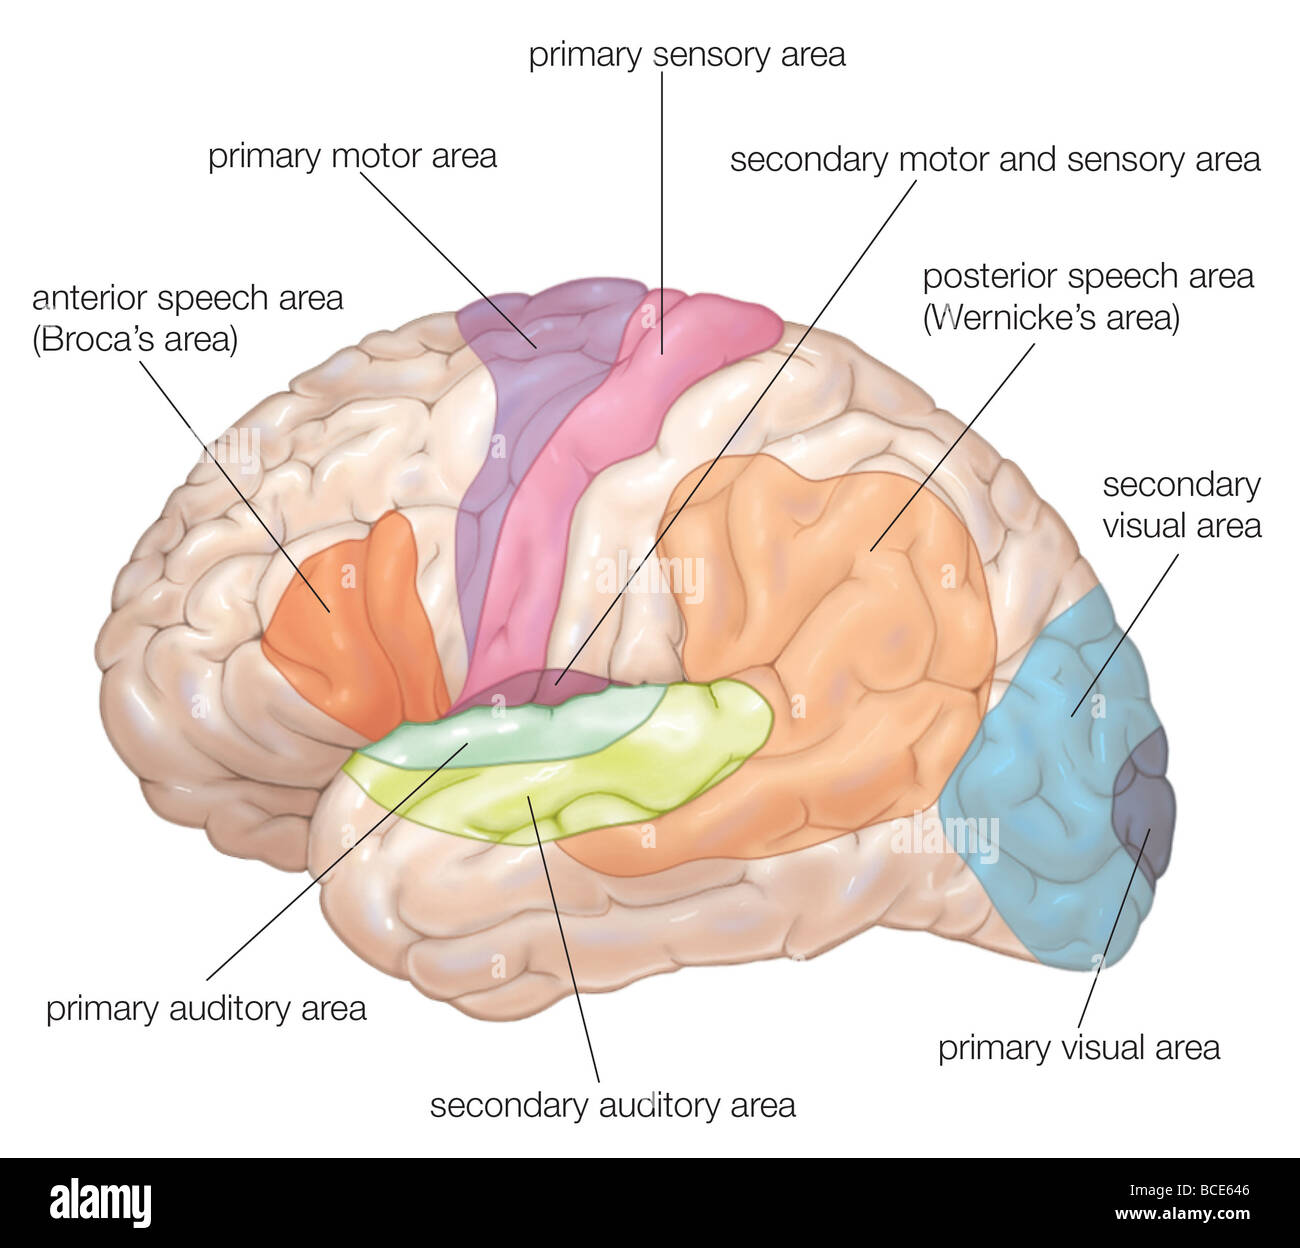 Diagram of the lateral view of the human brain, showing the functional areas (motor, sensory, auditory, visual, - Stock Image